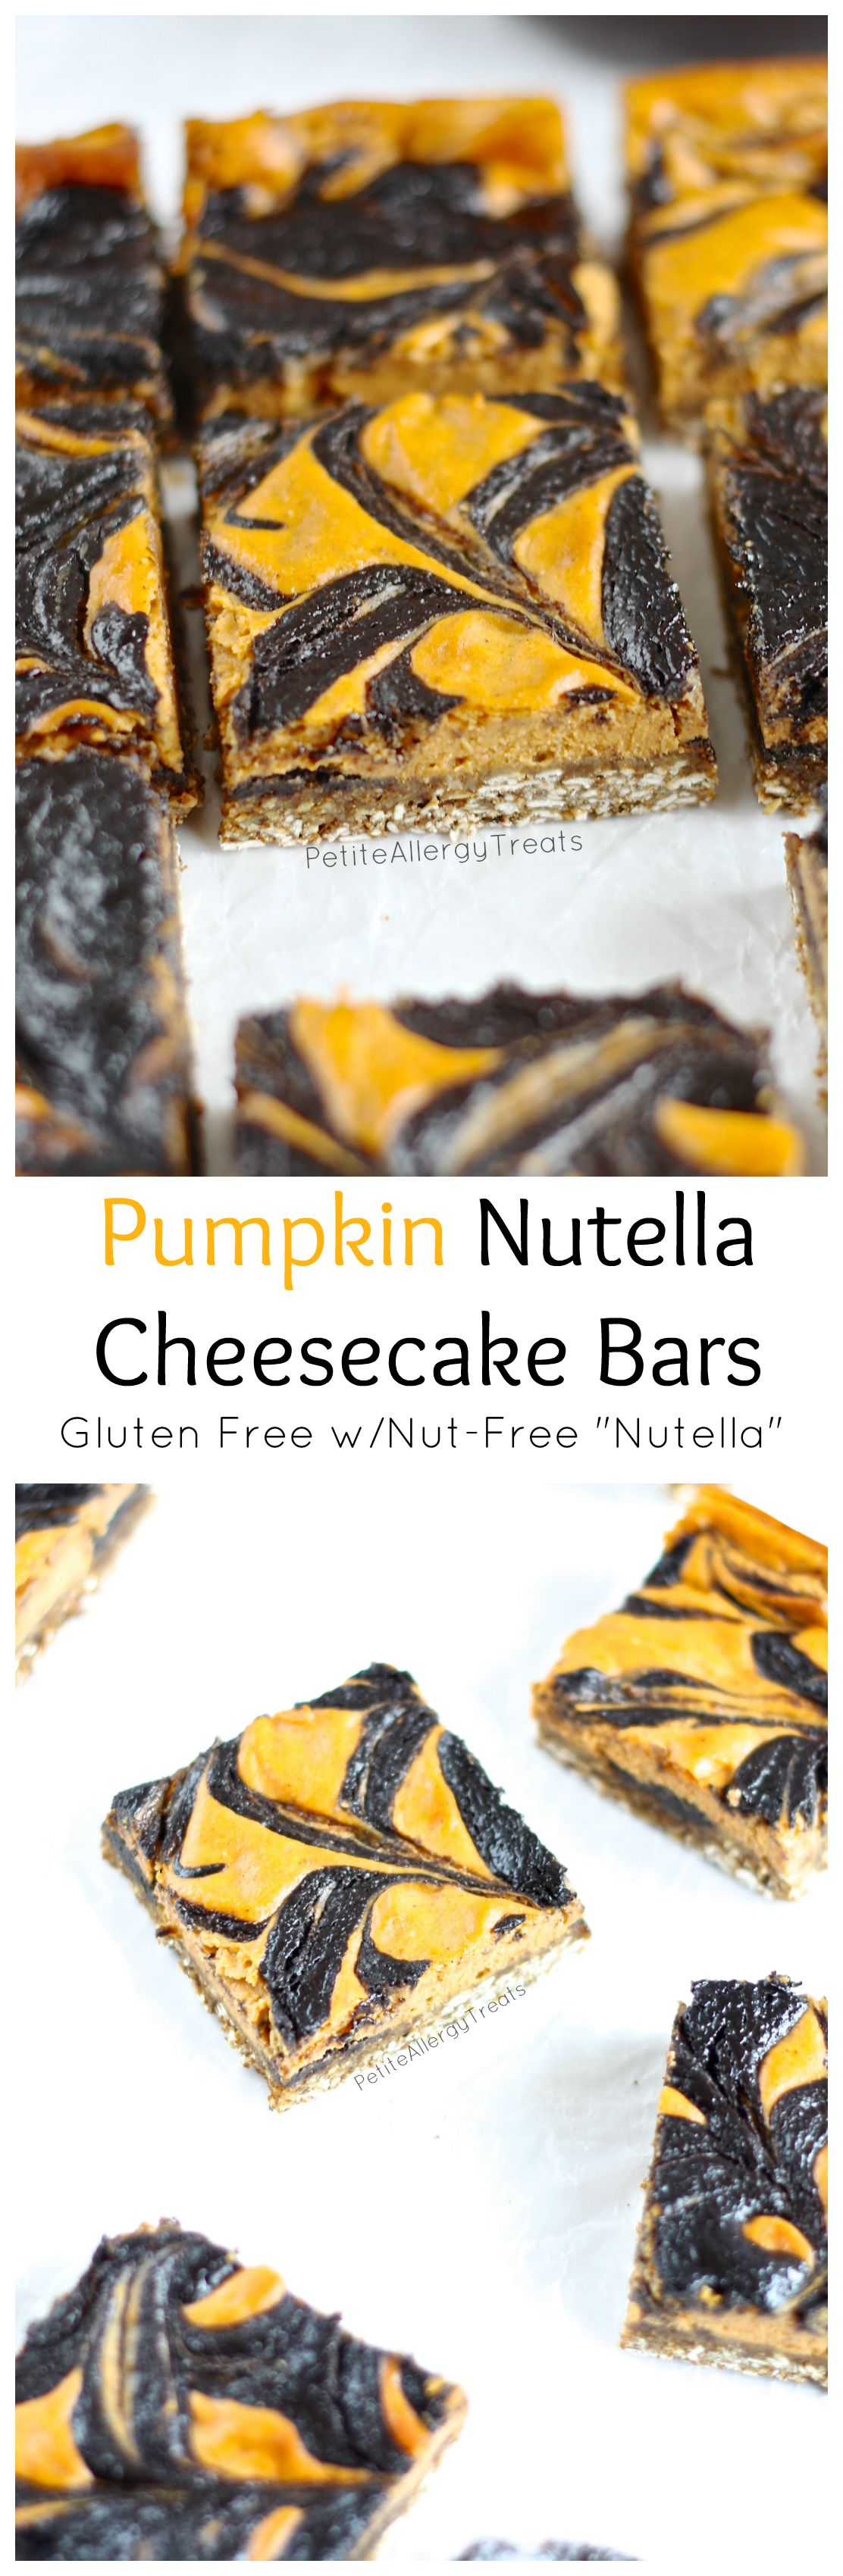 Pumpkin Nutella Cheesecake Bars (gluten free egg free)- Pumpkin and nut-free nutella cheesecake bars